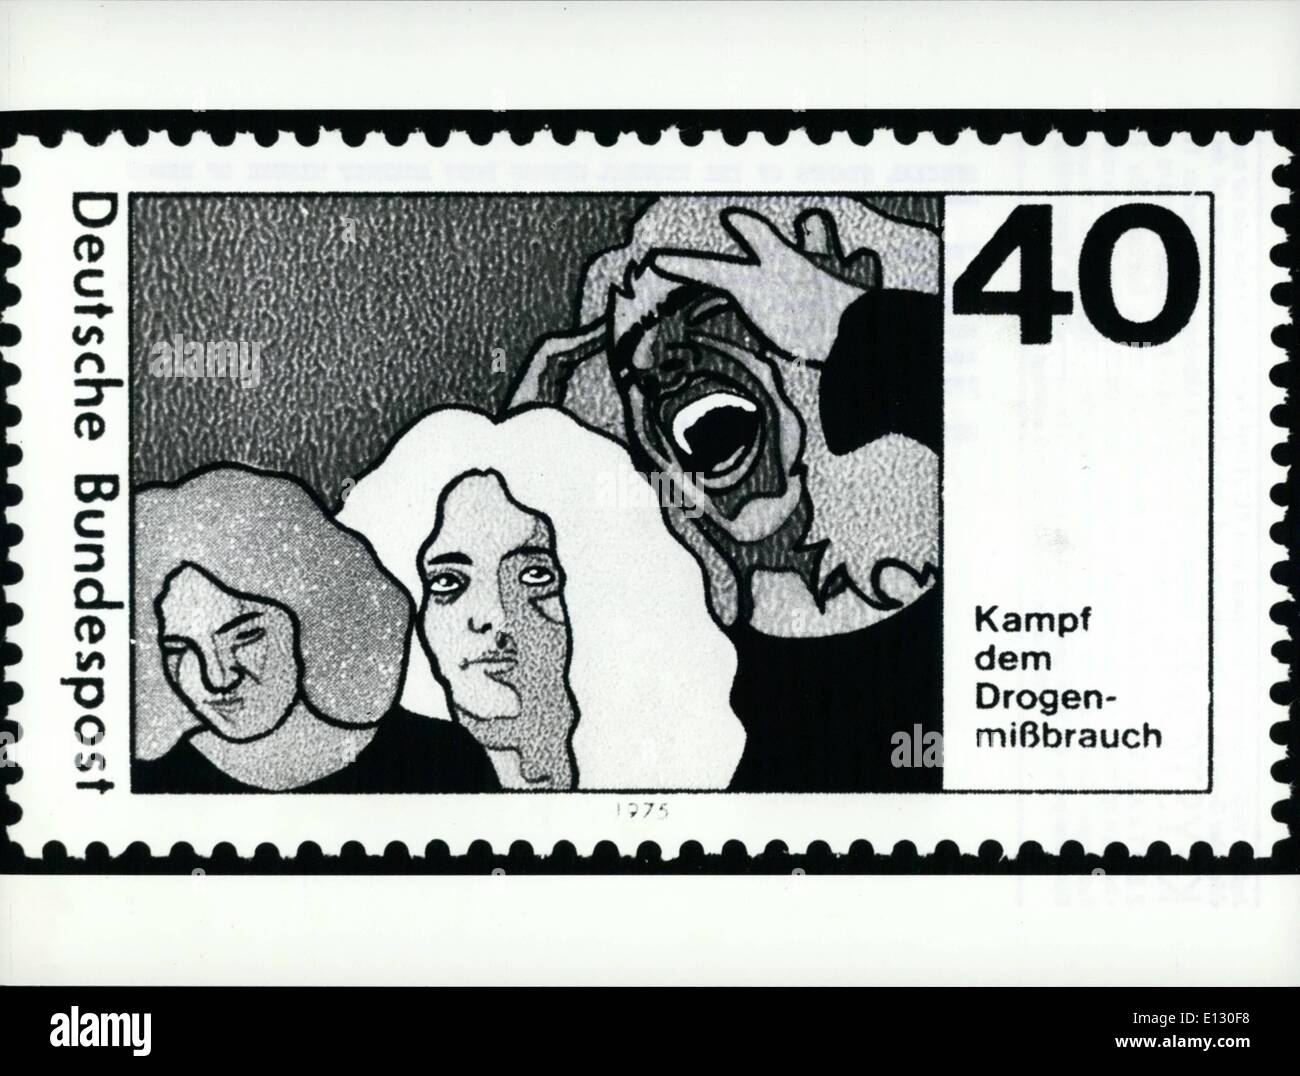 Feb. 26, 2012 - Special stamps of the Federal German Post against misuse of drugs. Fight against misuse of drugs says the printing on the special stamps of the Federal post, which will be released on August 14th, 1975. With these stamps the post makes its contribution to the campaign of the Federal Government against misuses of drugs and dope. The three heads on the stamp picture in succession the psychological standard situations of a typical drug user. - Stock Image